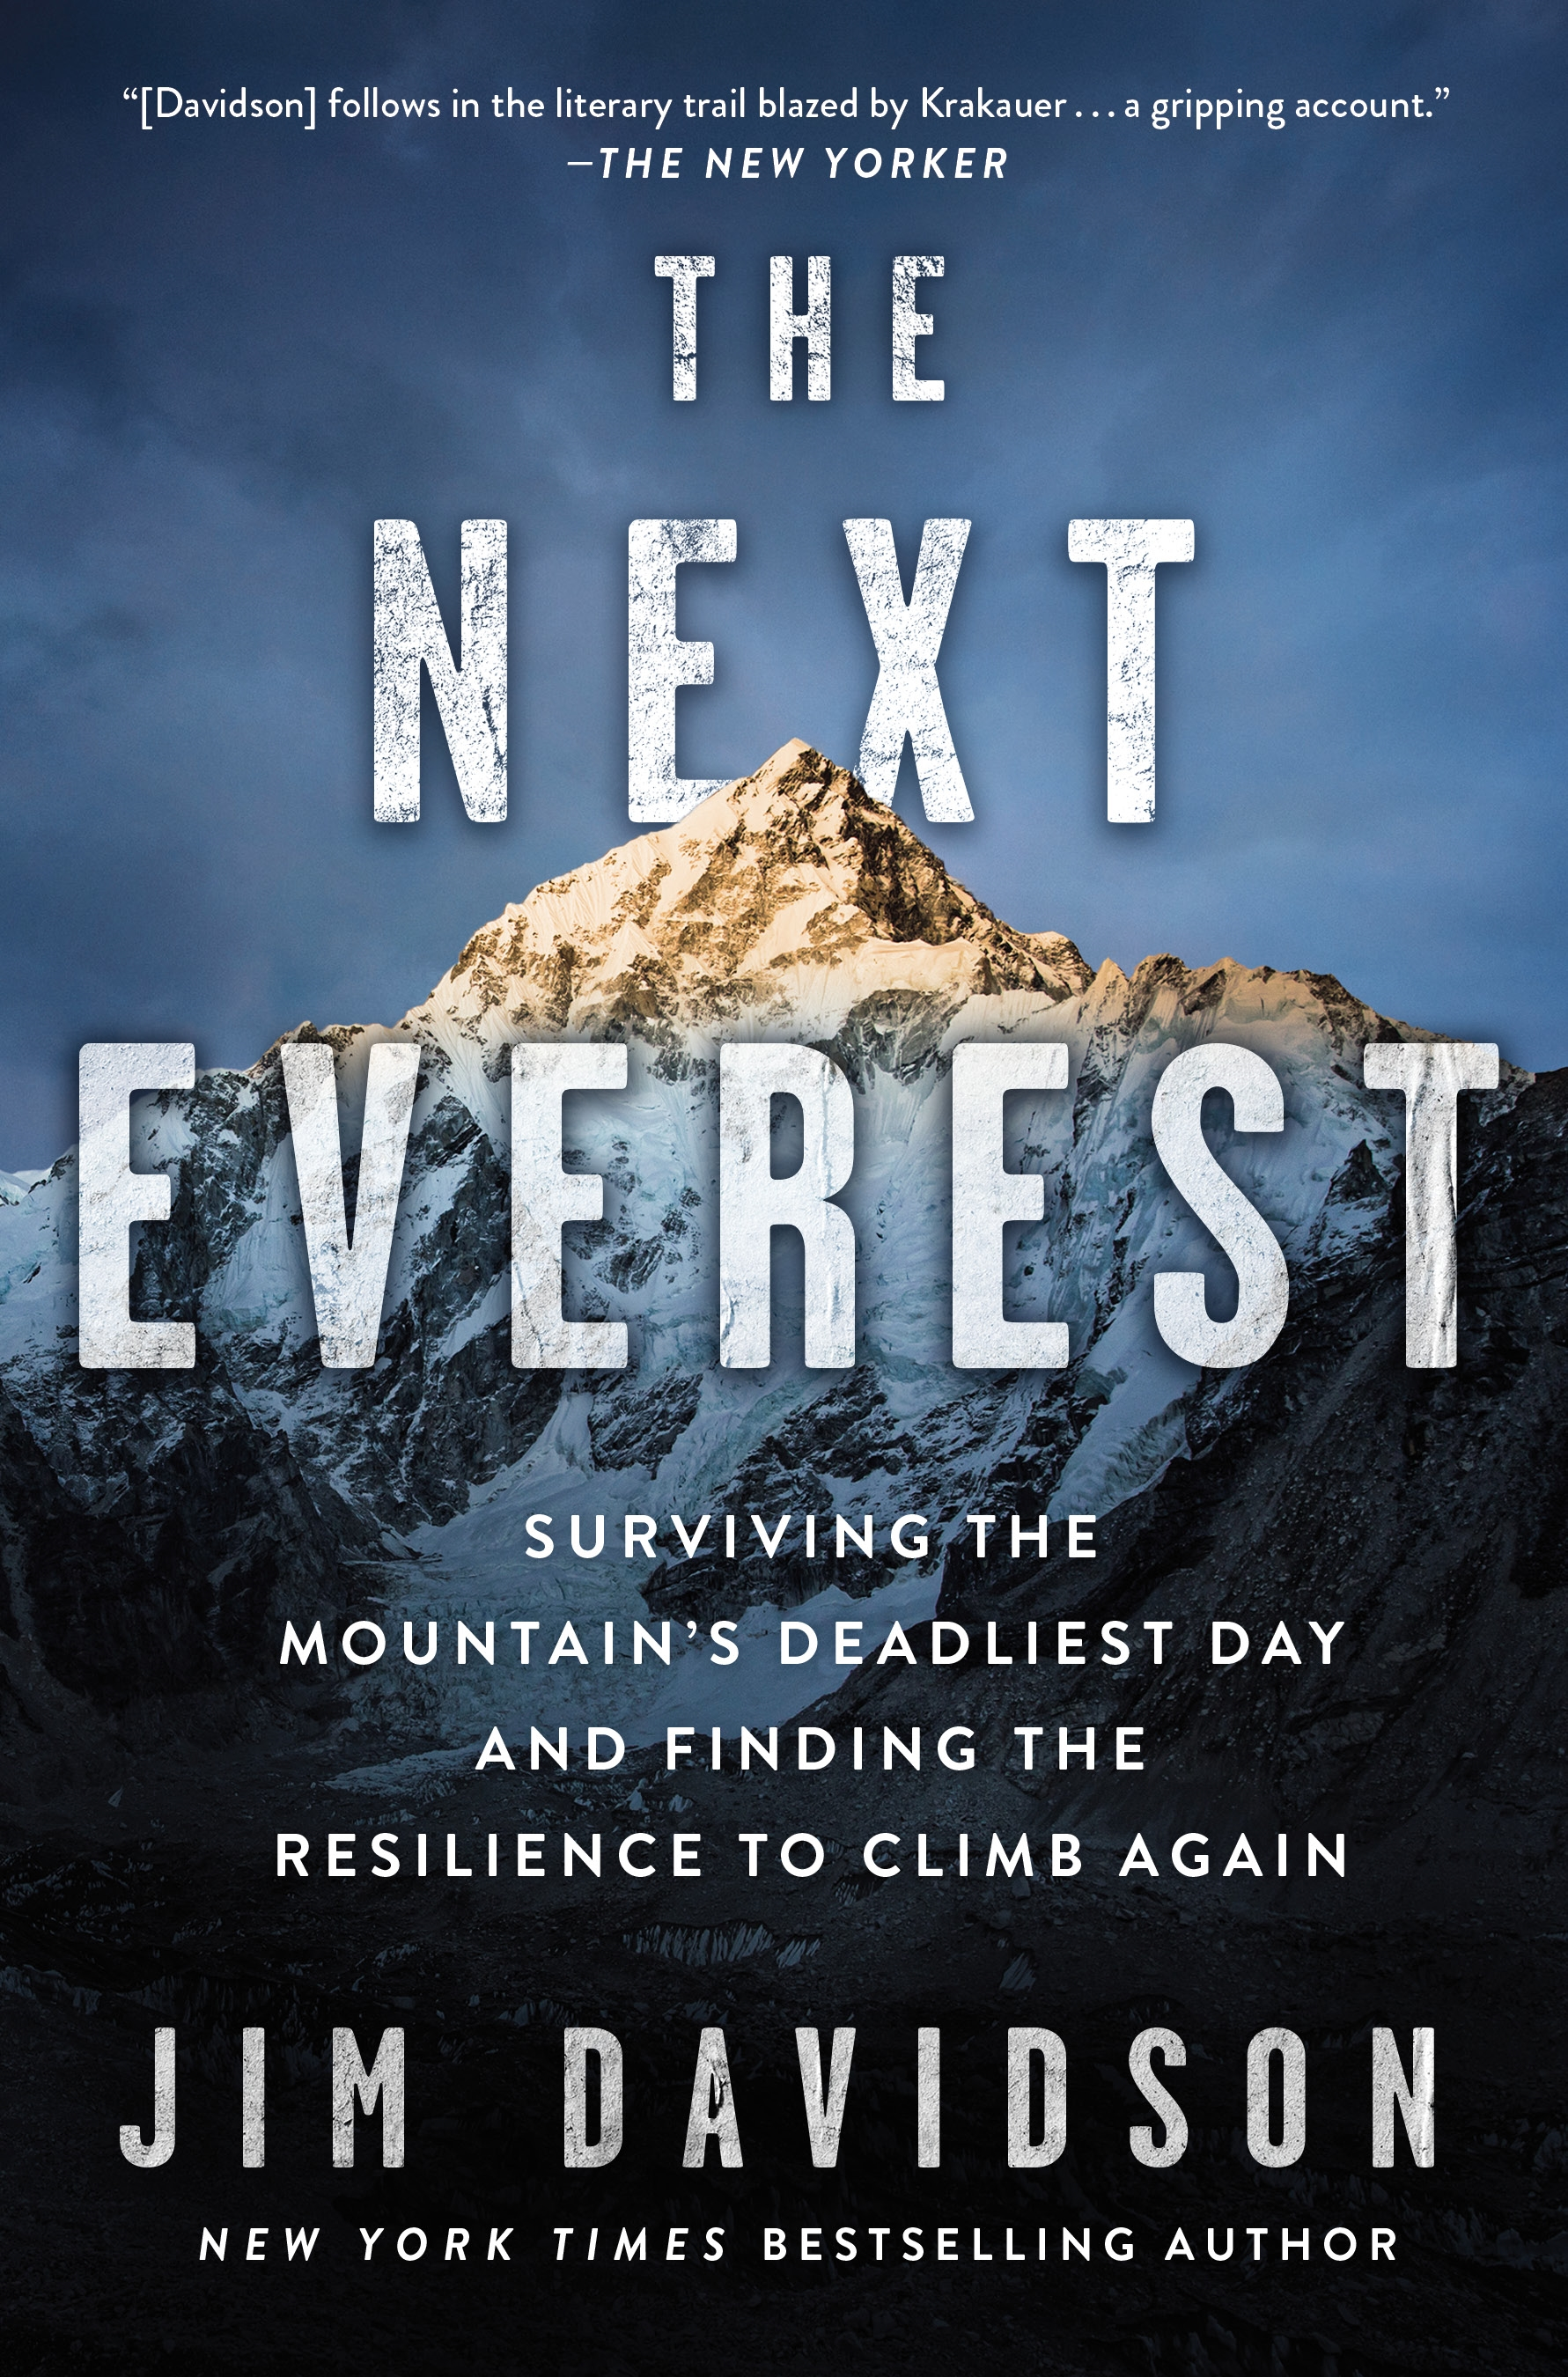 The Next Everest Surviving the Mountain's Deadliest Day and Finding the Resilience to Climb Again